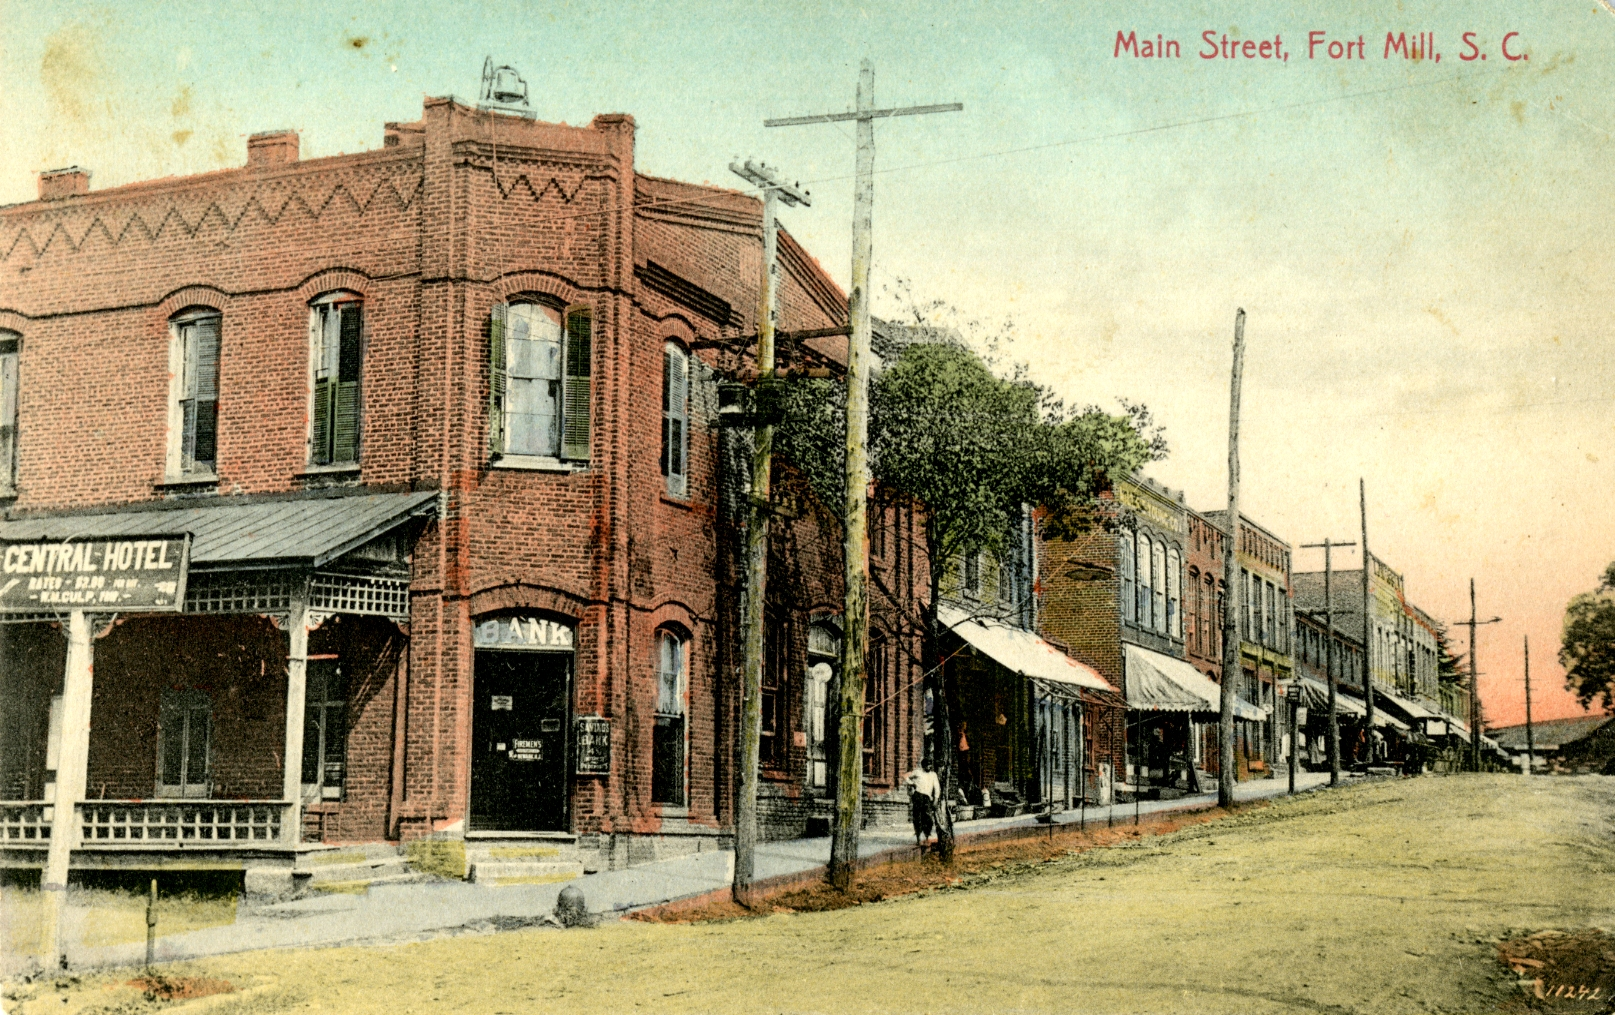 Postcard courtesy of Fort Mill History Museum